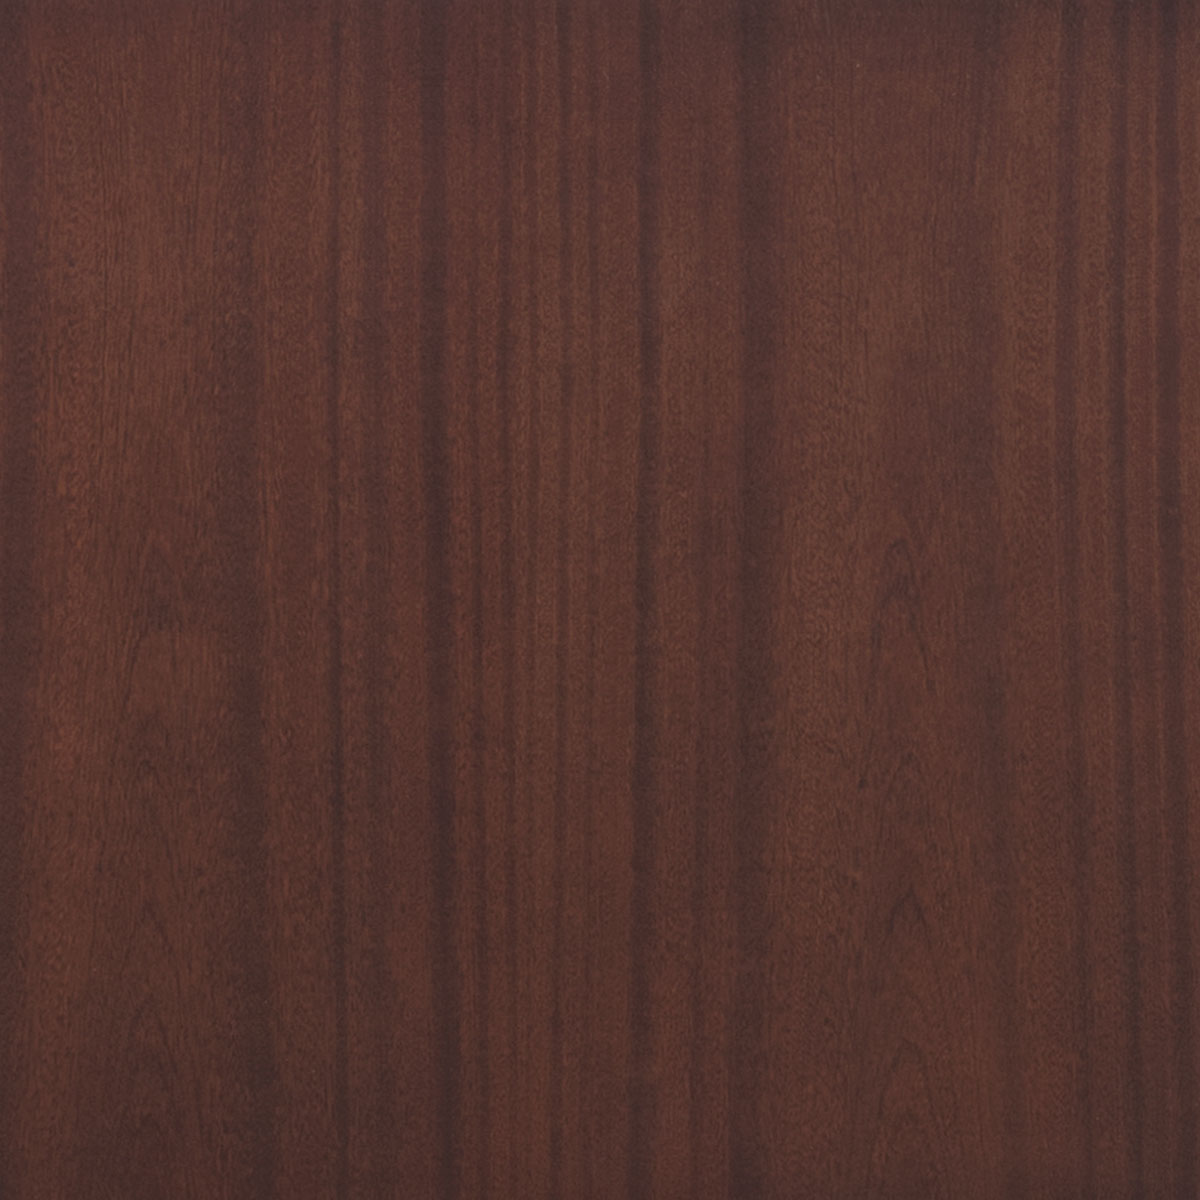 Mahogany Wood, Dark Mahogany Finish